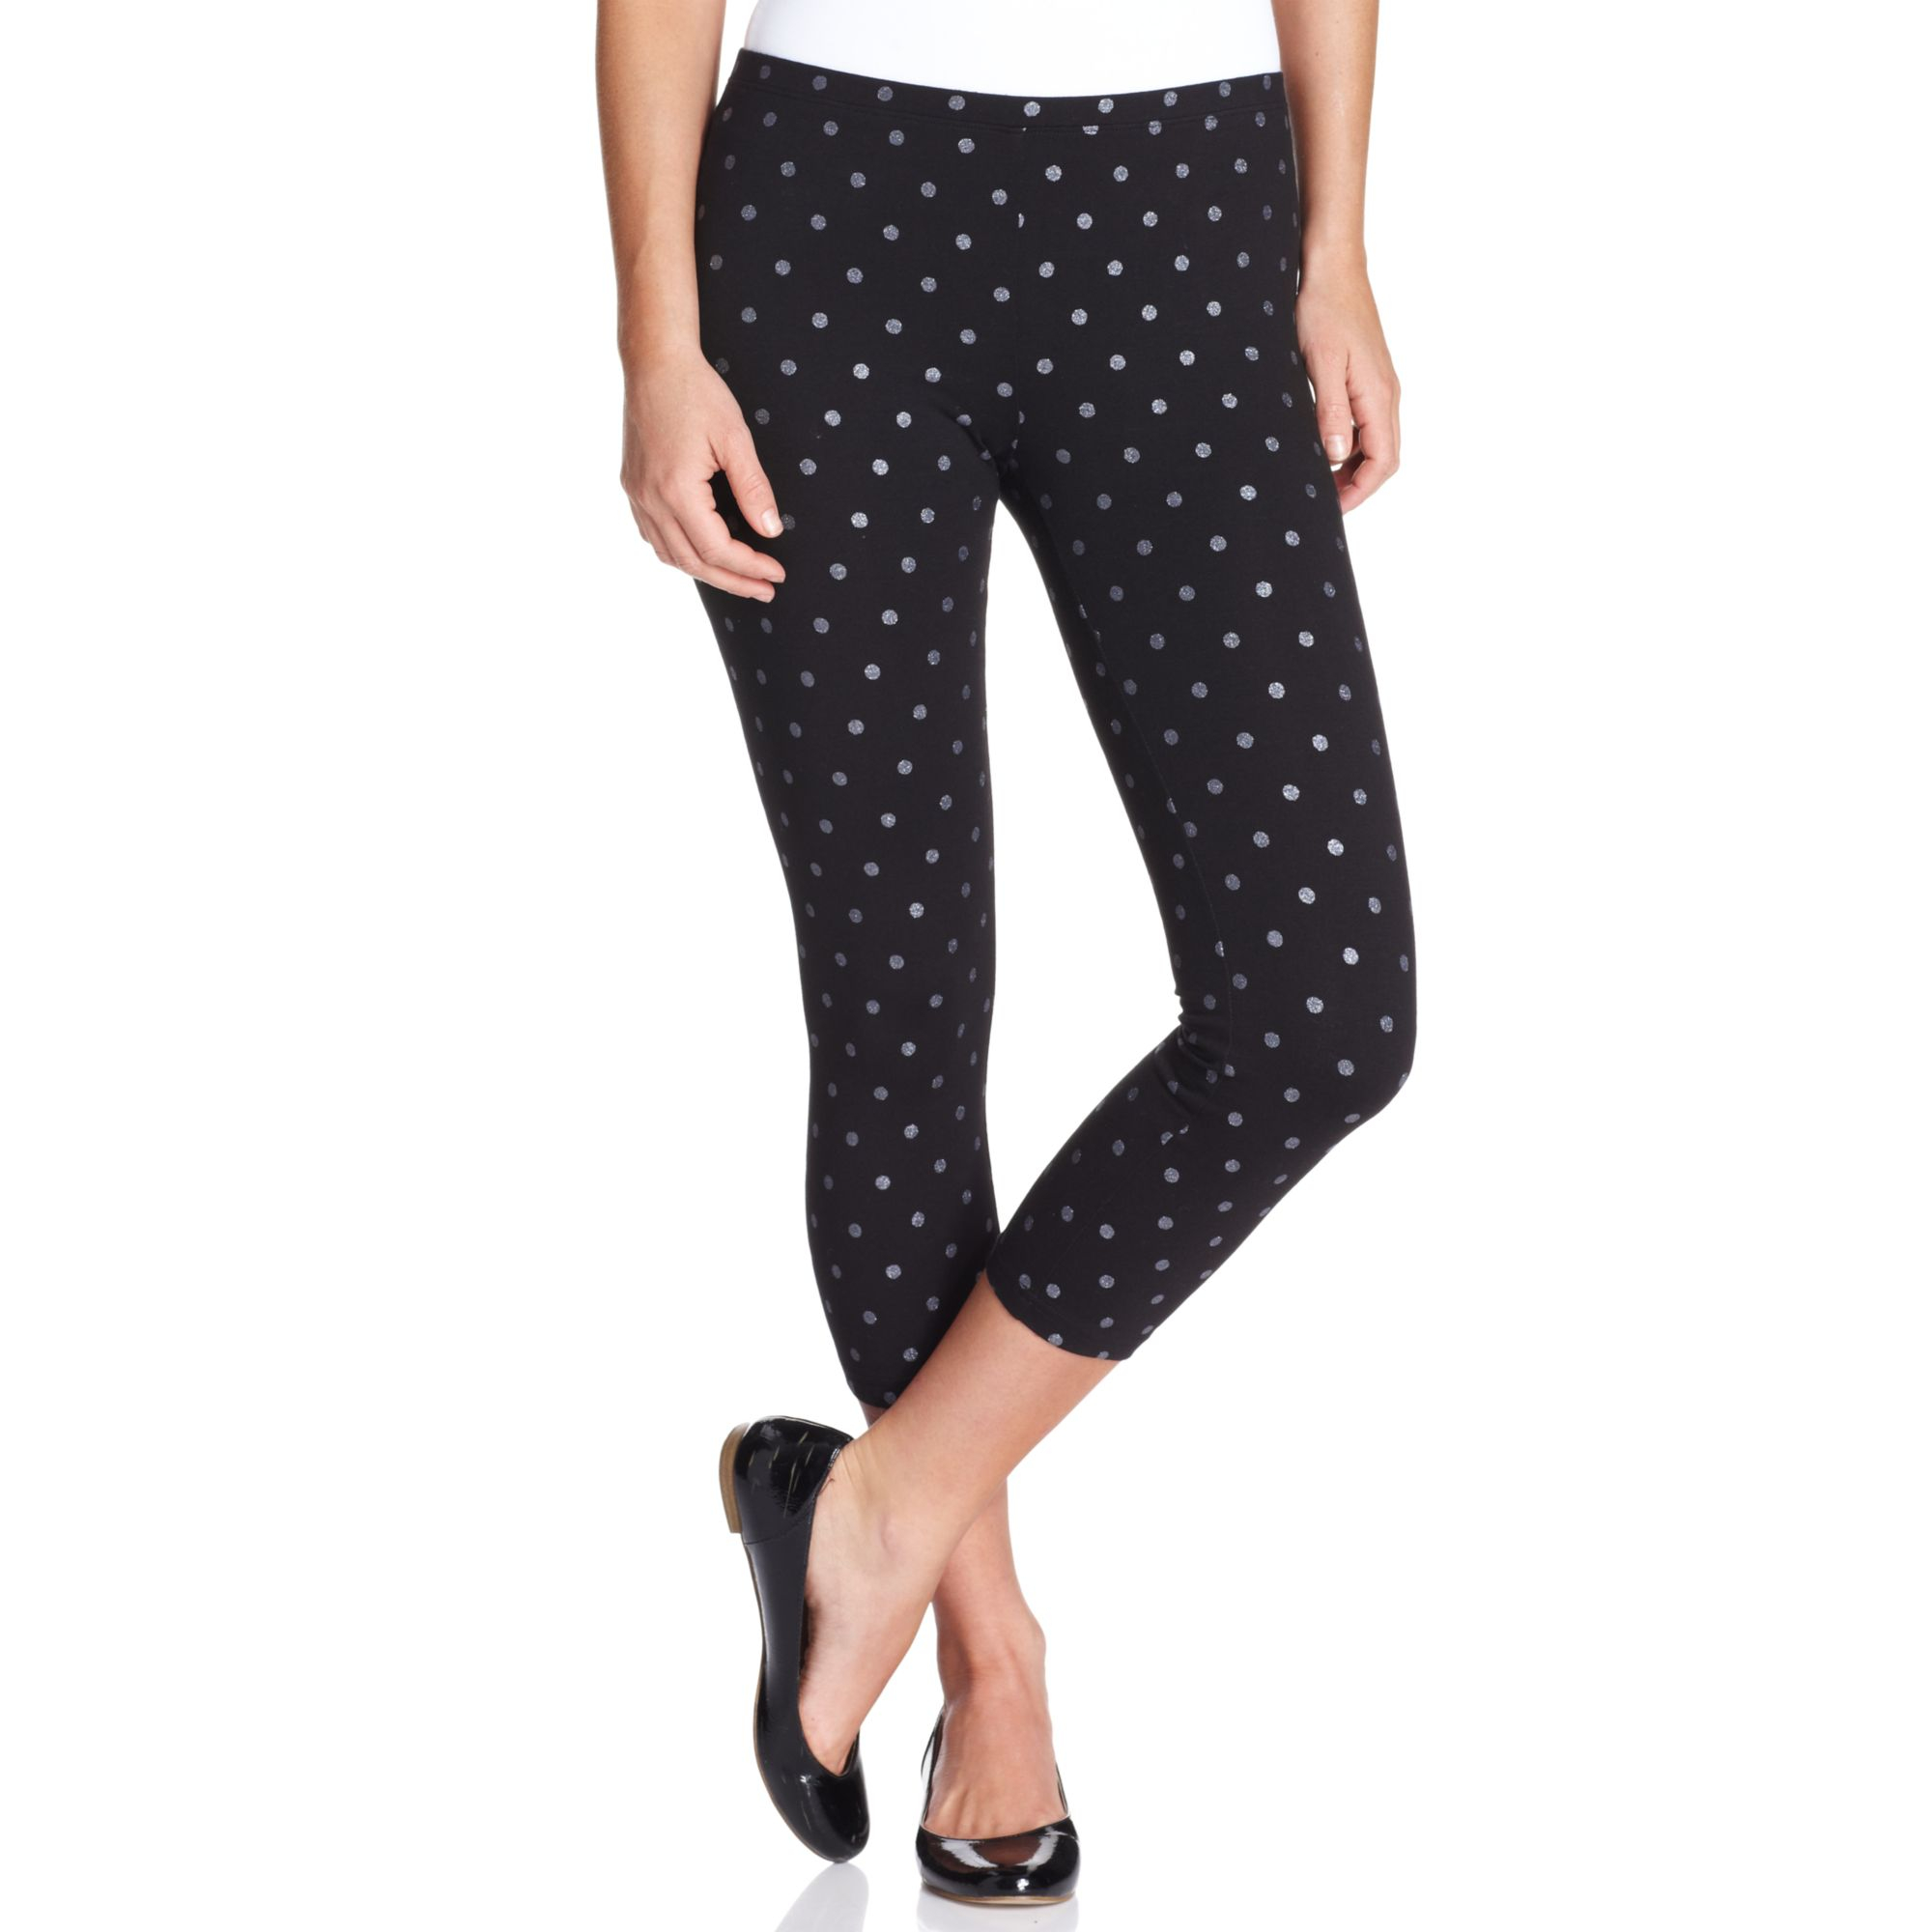 Hue Leggings Capri